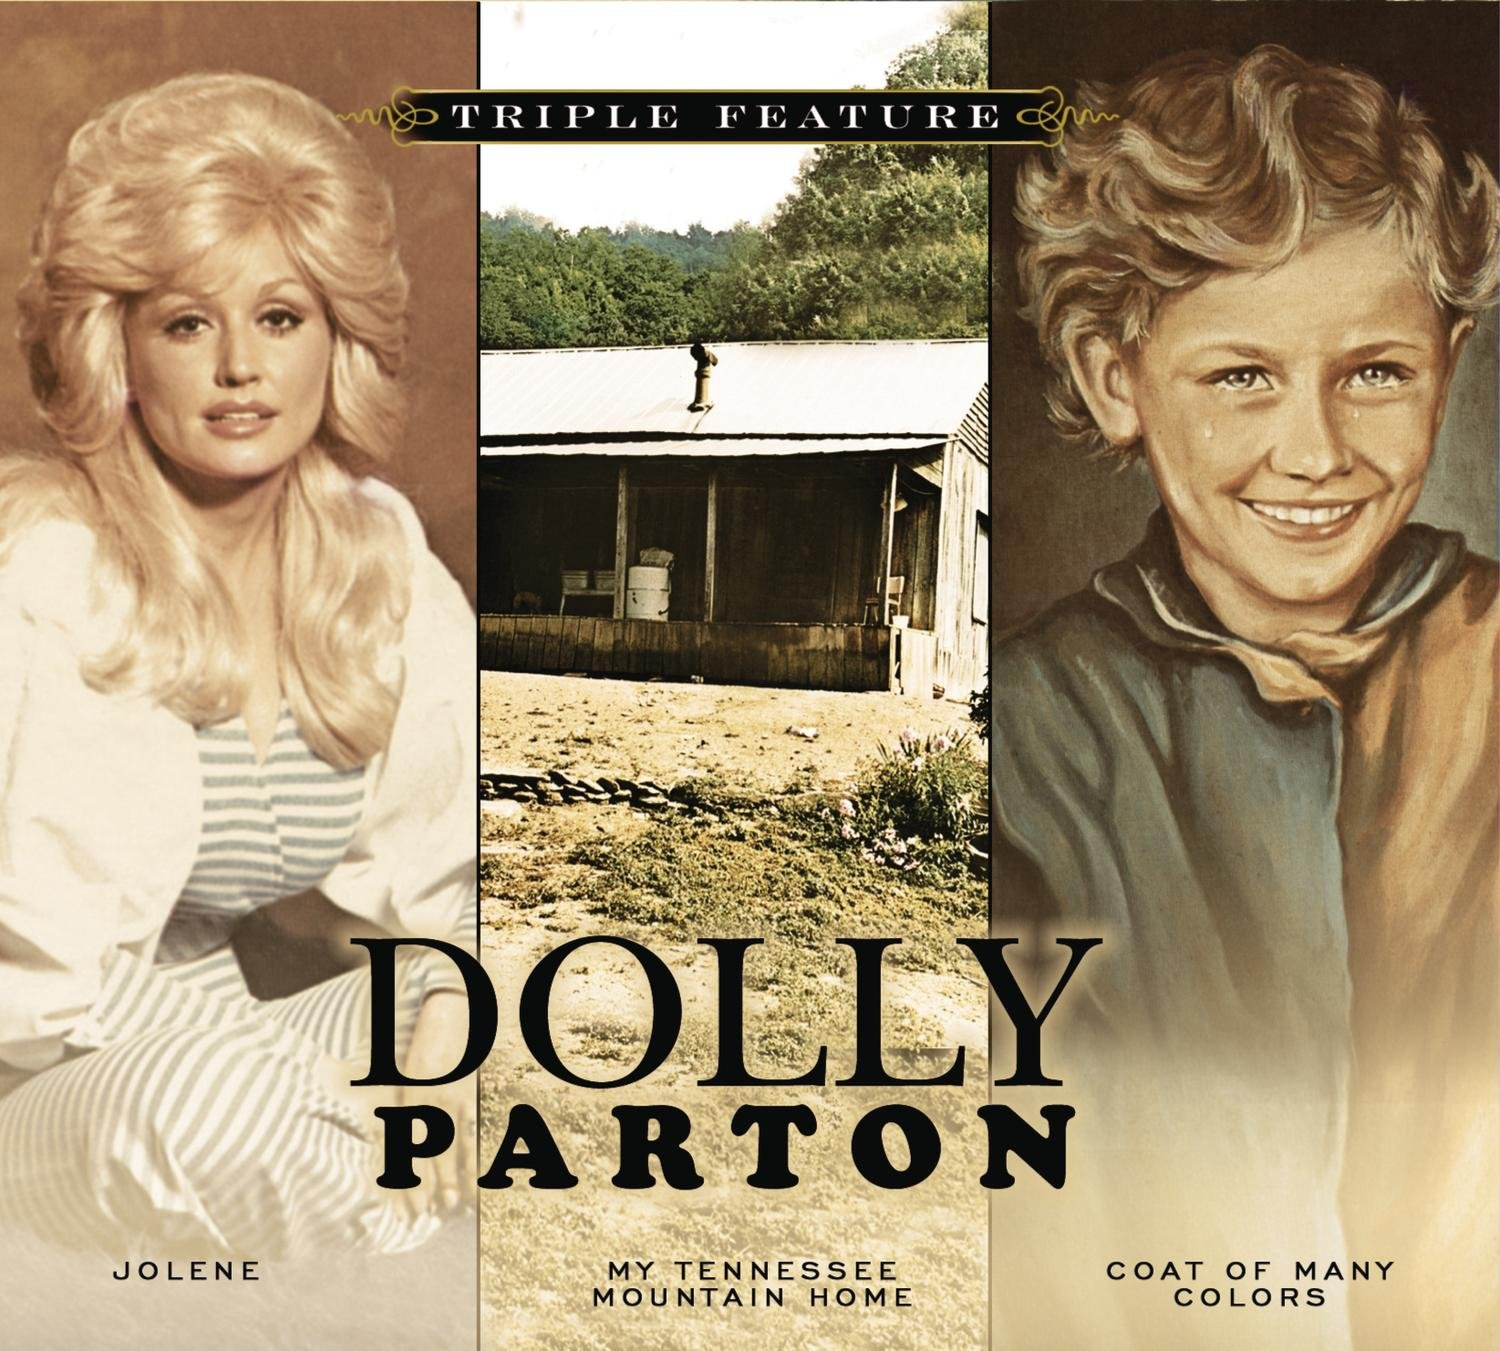 dolly parton coat of many colors my tennessee mountain home jolene amazoncom music - Dolly Parton Coat Of Many Colors Book